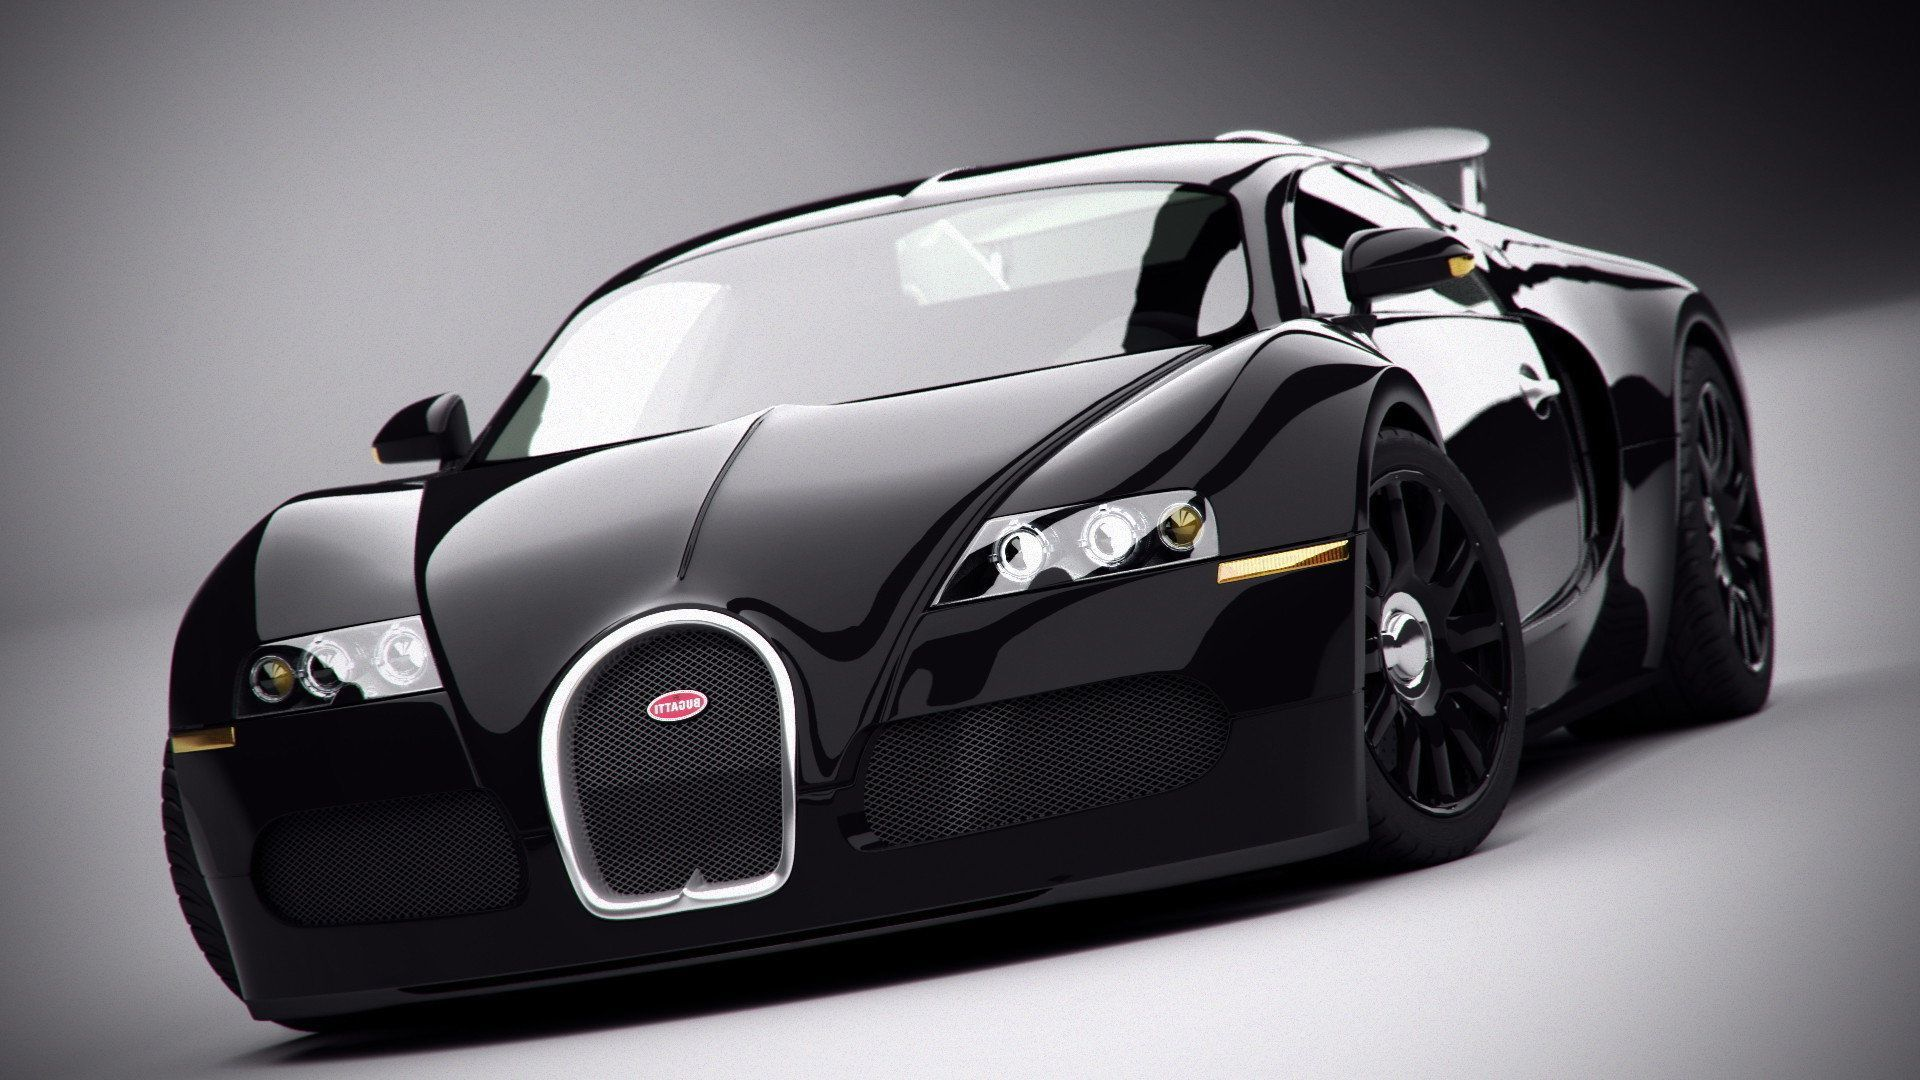 Bugatti Veyron Wallpaper Gold   Wallpaper.